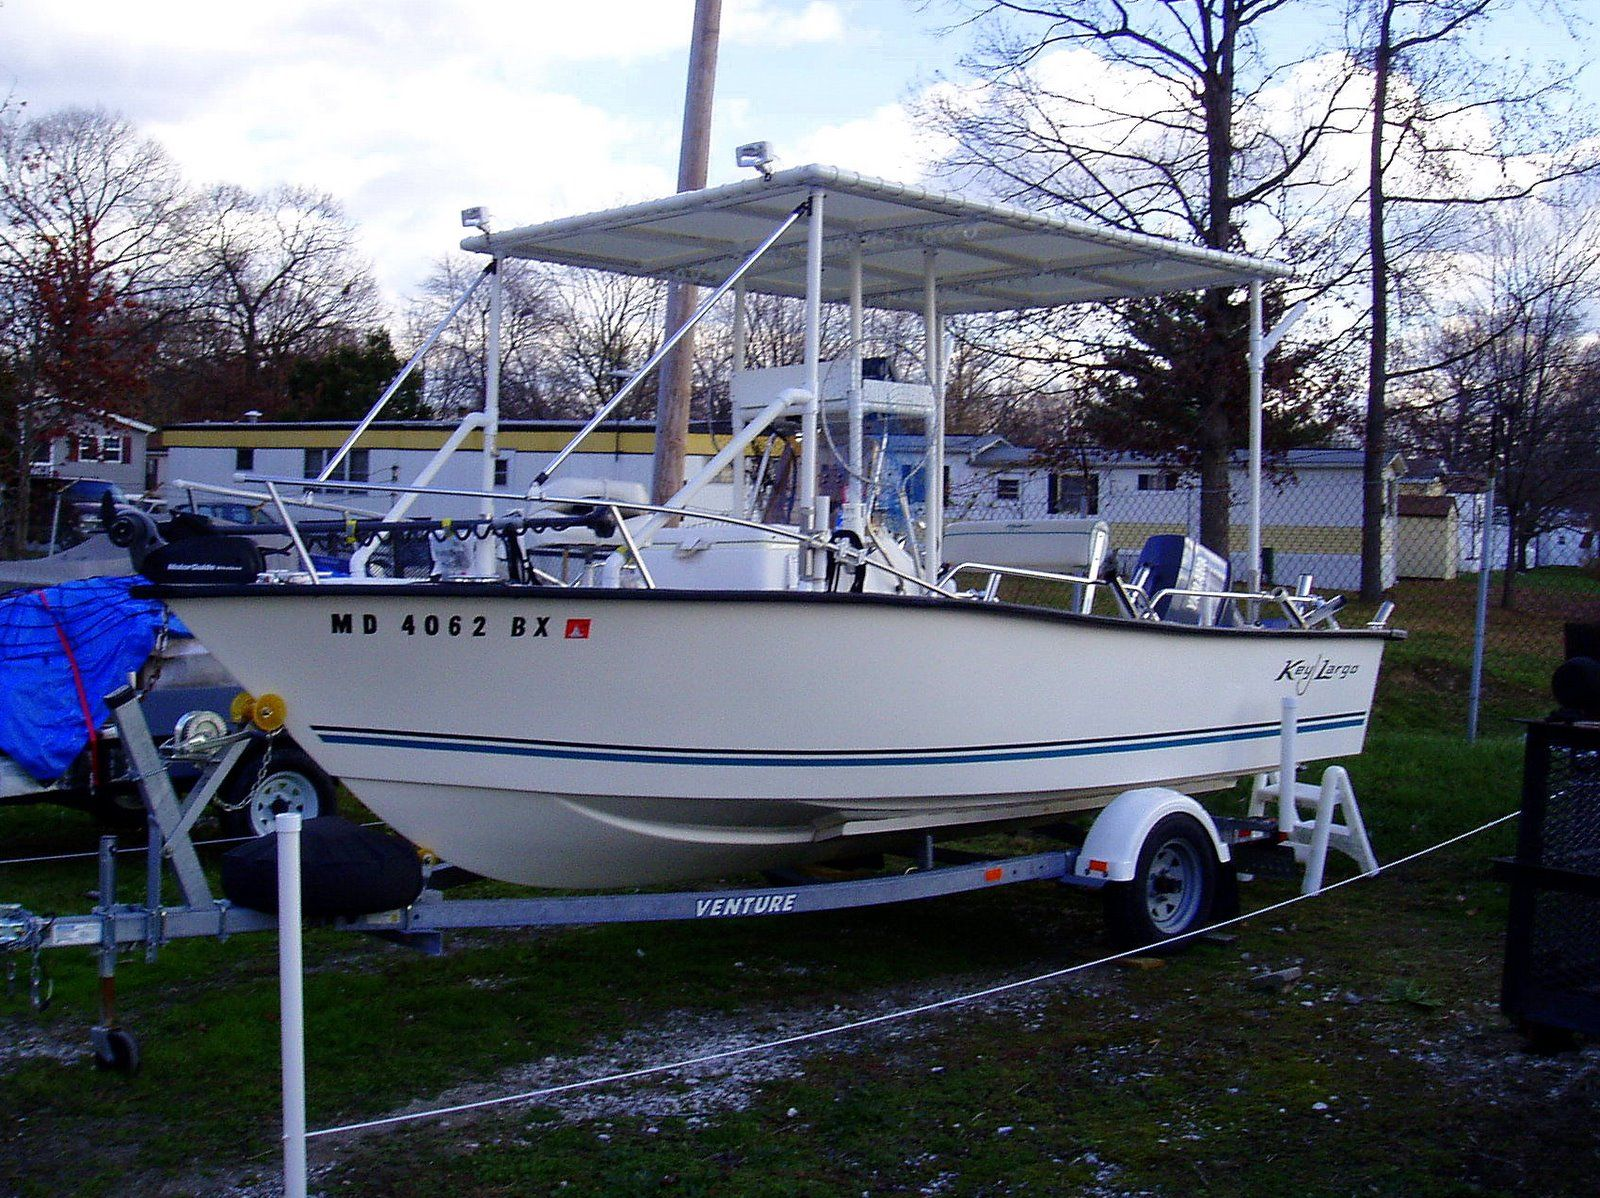 Build a PVC Boat Canopy & Build a PVC Boat Canopy | Ideas | Pinterest | Canopy and Boating